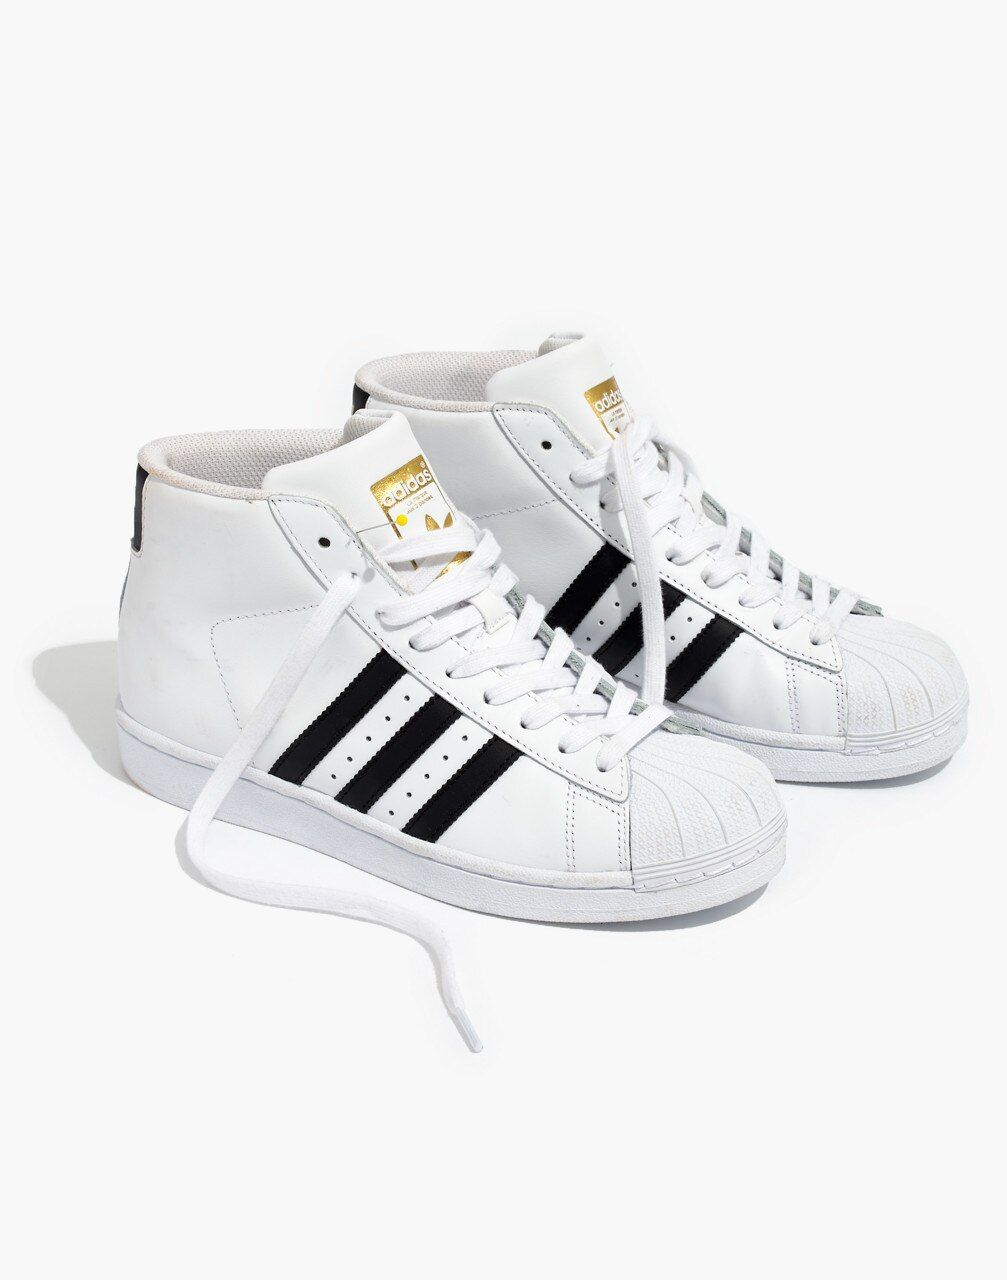 adidas superstar black and white high tops